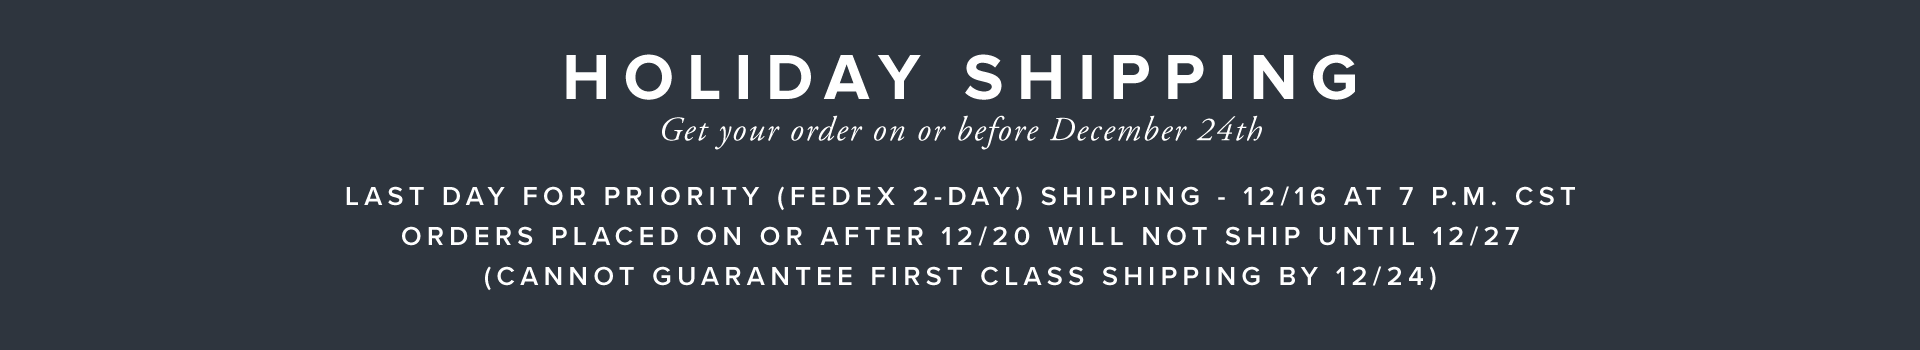 holiday-shipping-banner.png